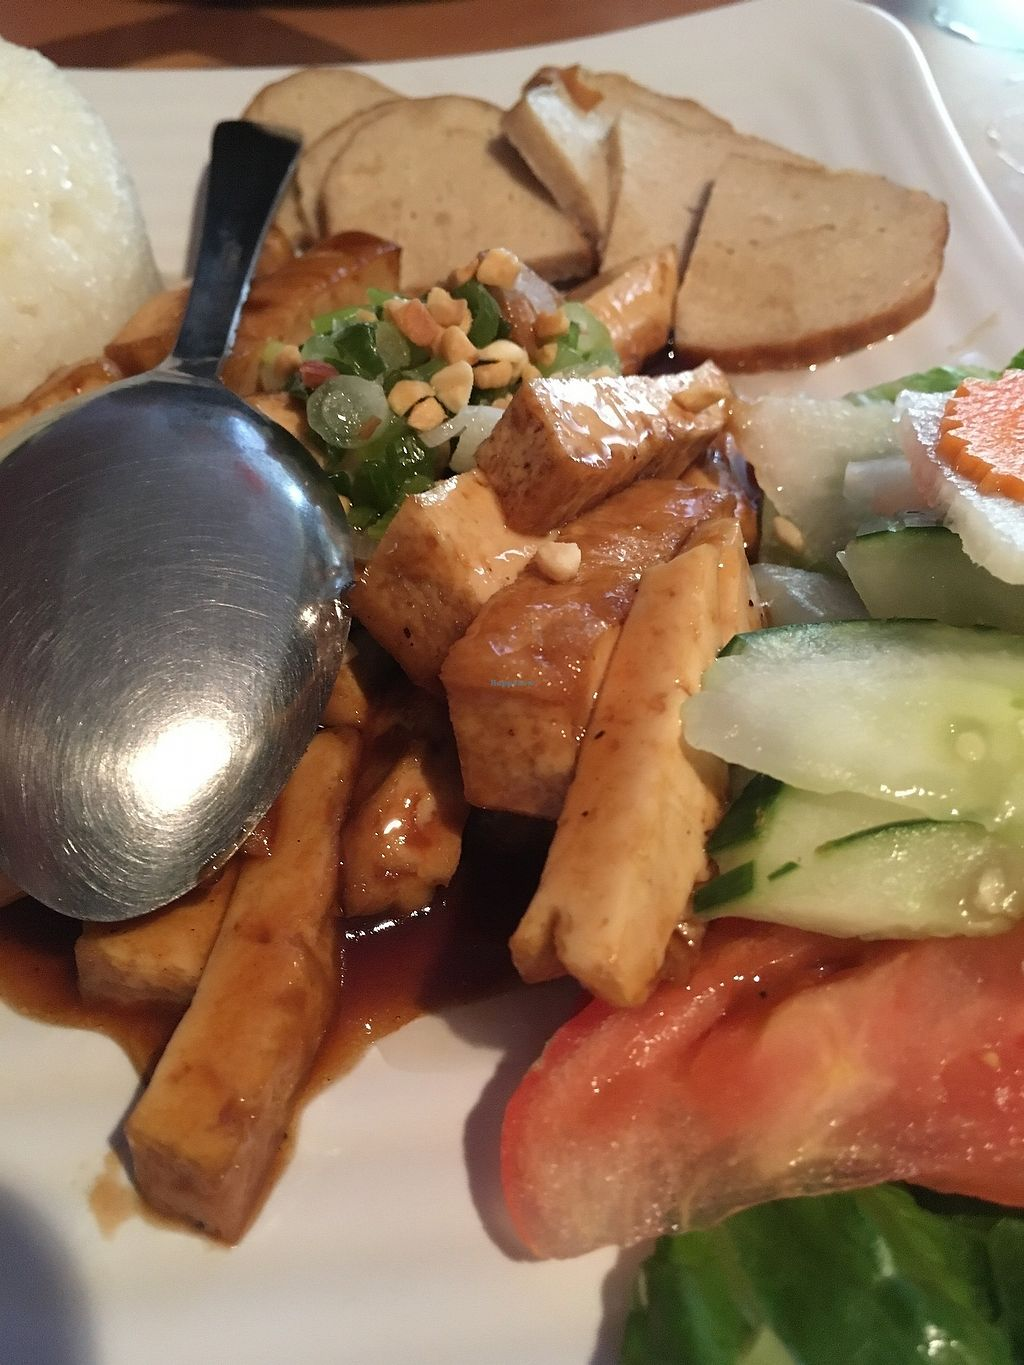 """Photo of Tan Lac Vien Vietnamese Bistro  by <a href=""""/members/profile/ecoRDN"""">ecoRDN</a> <br/>Vegan Broken Rice Tan Lac Vien - Squirrel Hill Photo by ecoRDN - ecoRDN.com <br/> July 16, 2017  - <a href='/contact/abuse/image/93466/280994'>Report</a>"""